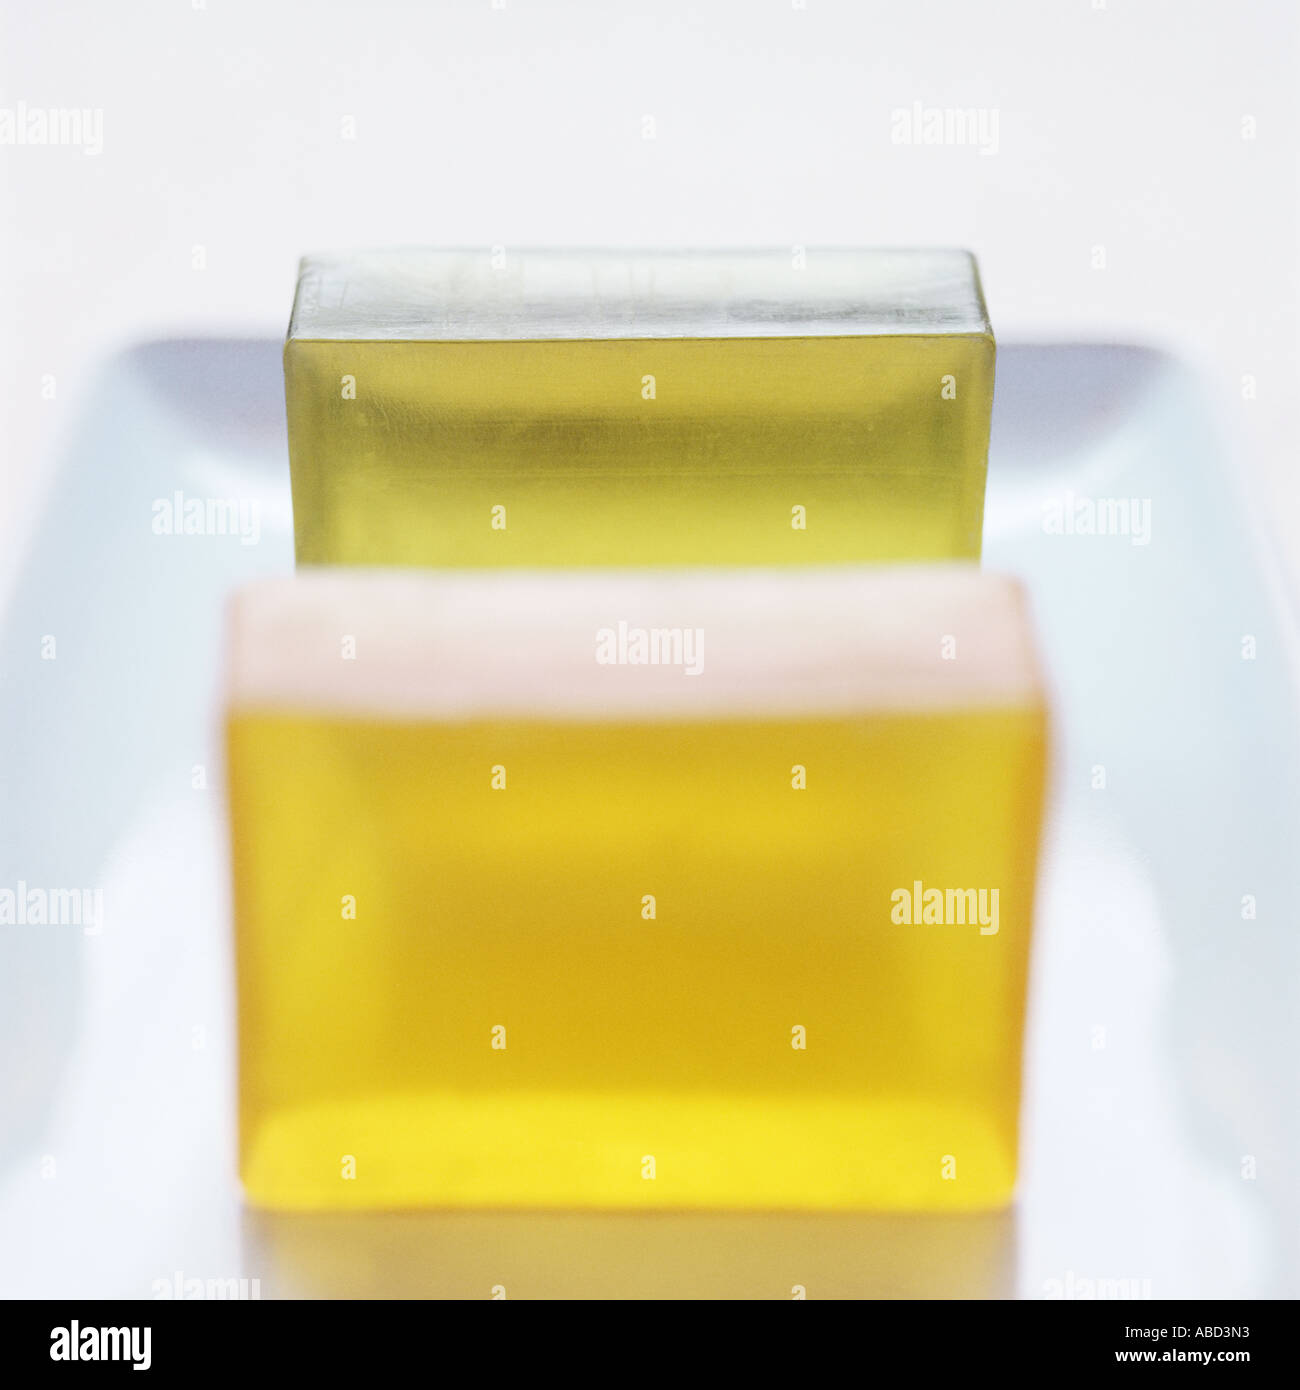 Unused bars of soap in a dish - Stock Image